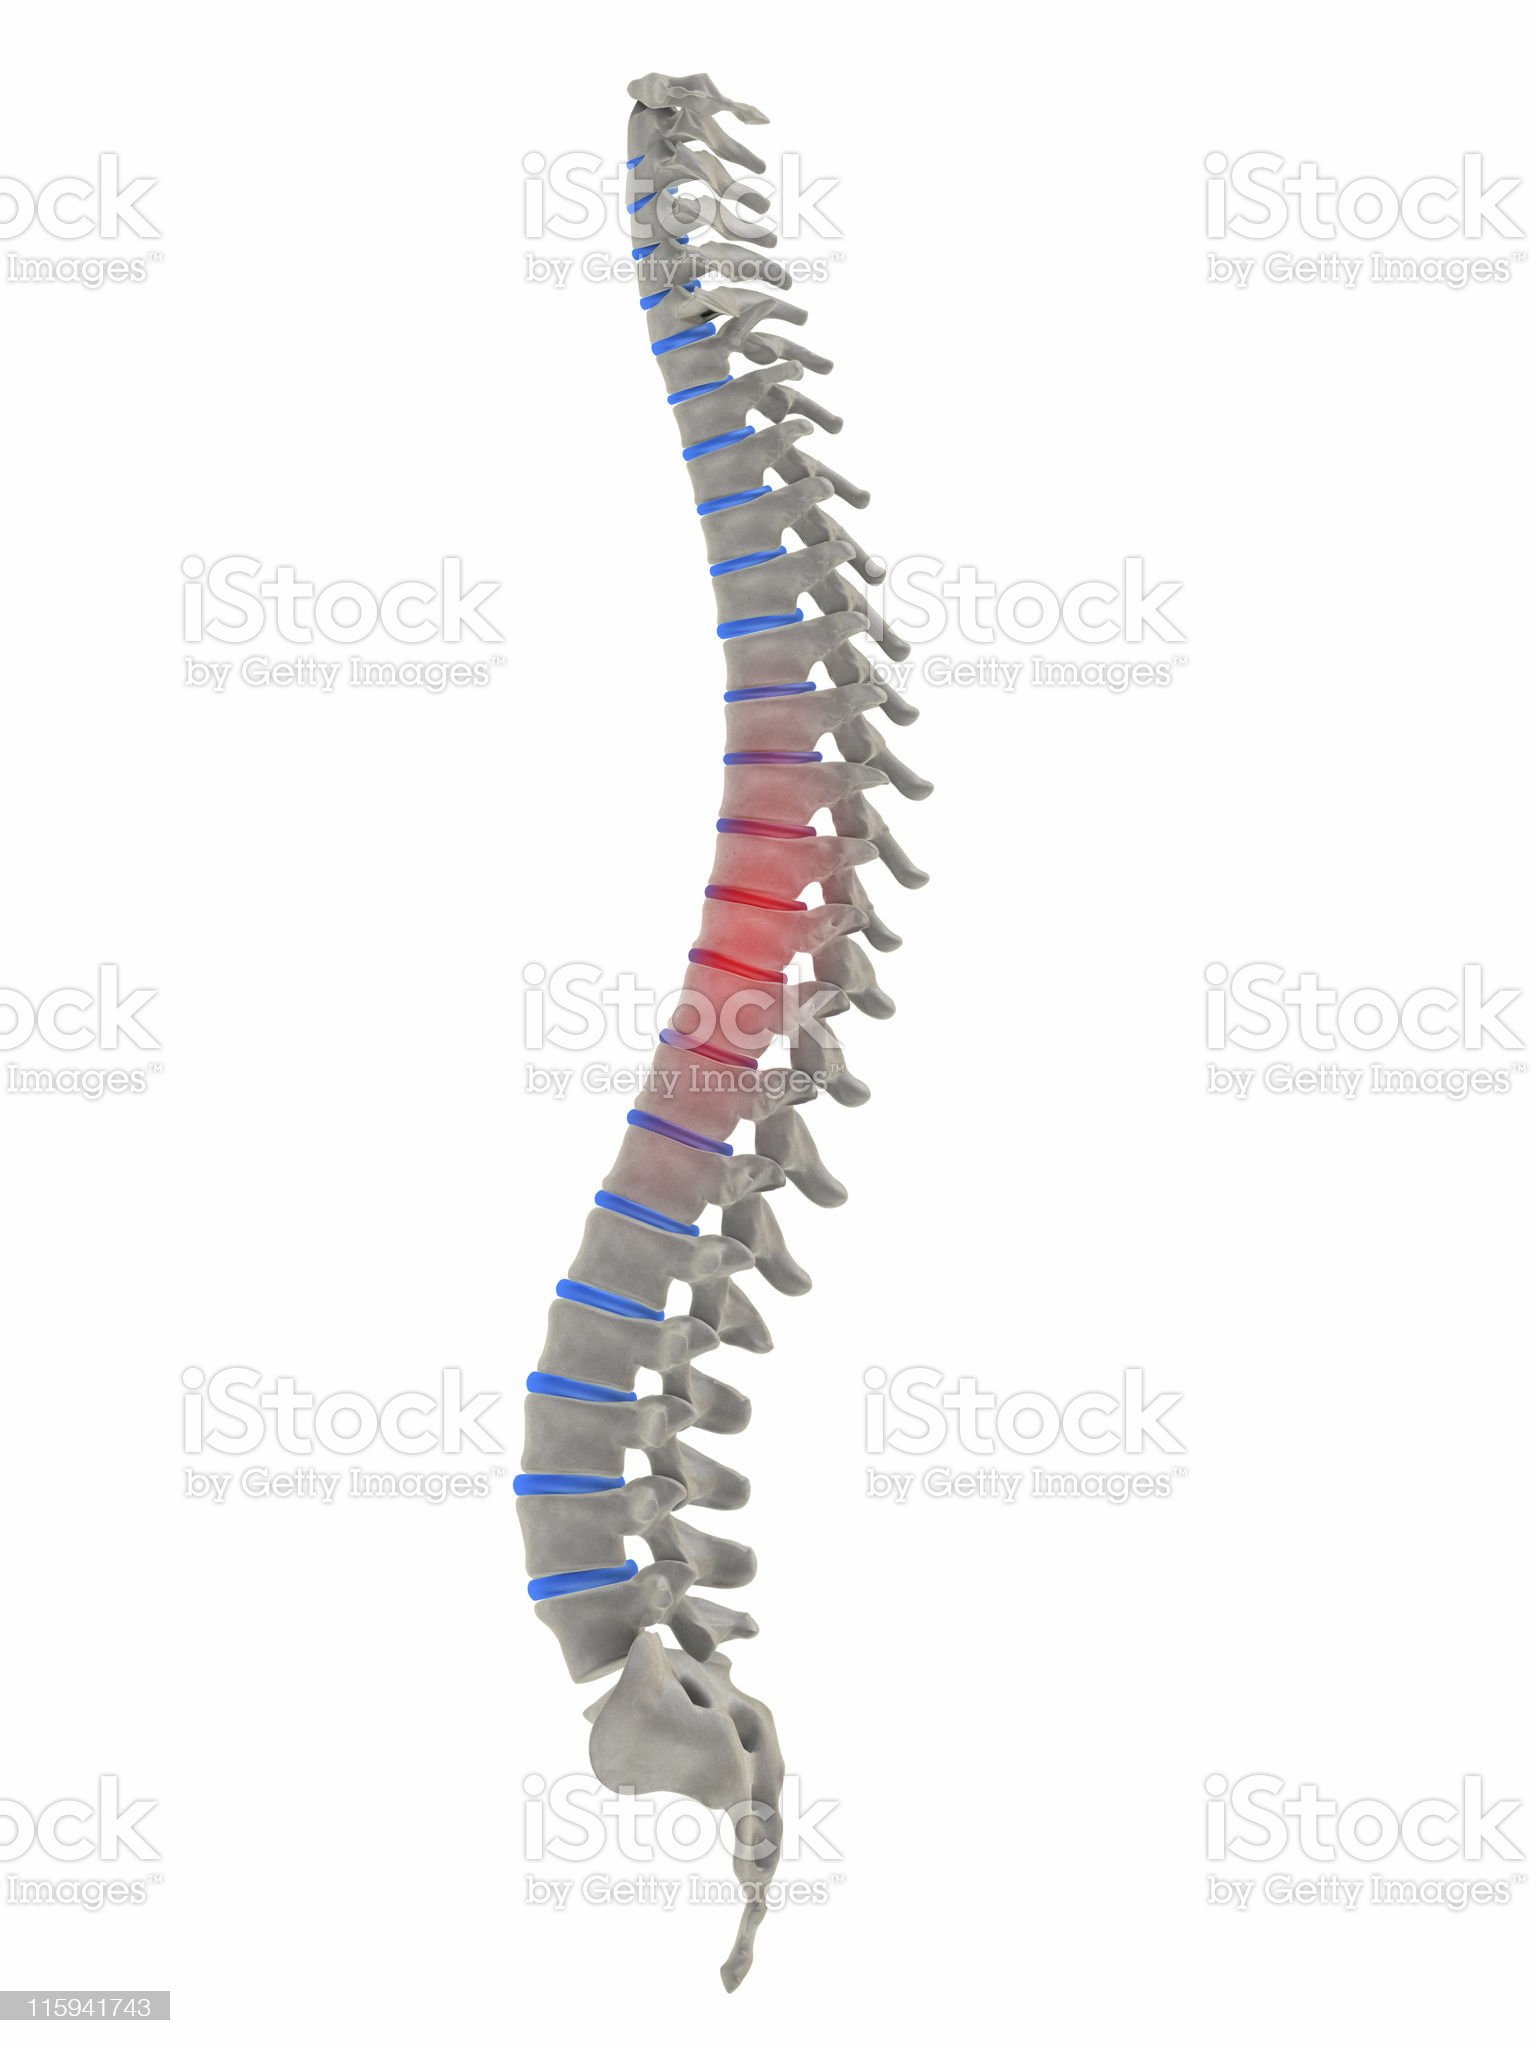 pain in the middle spine royalty-free stock photo